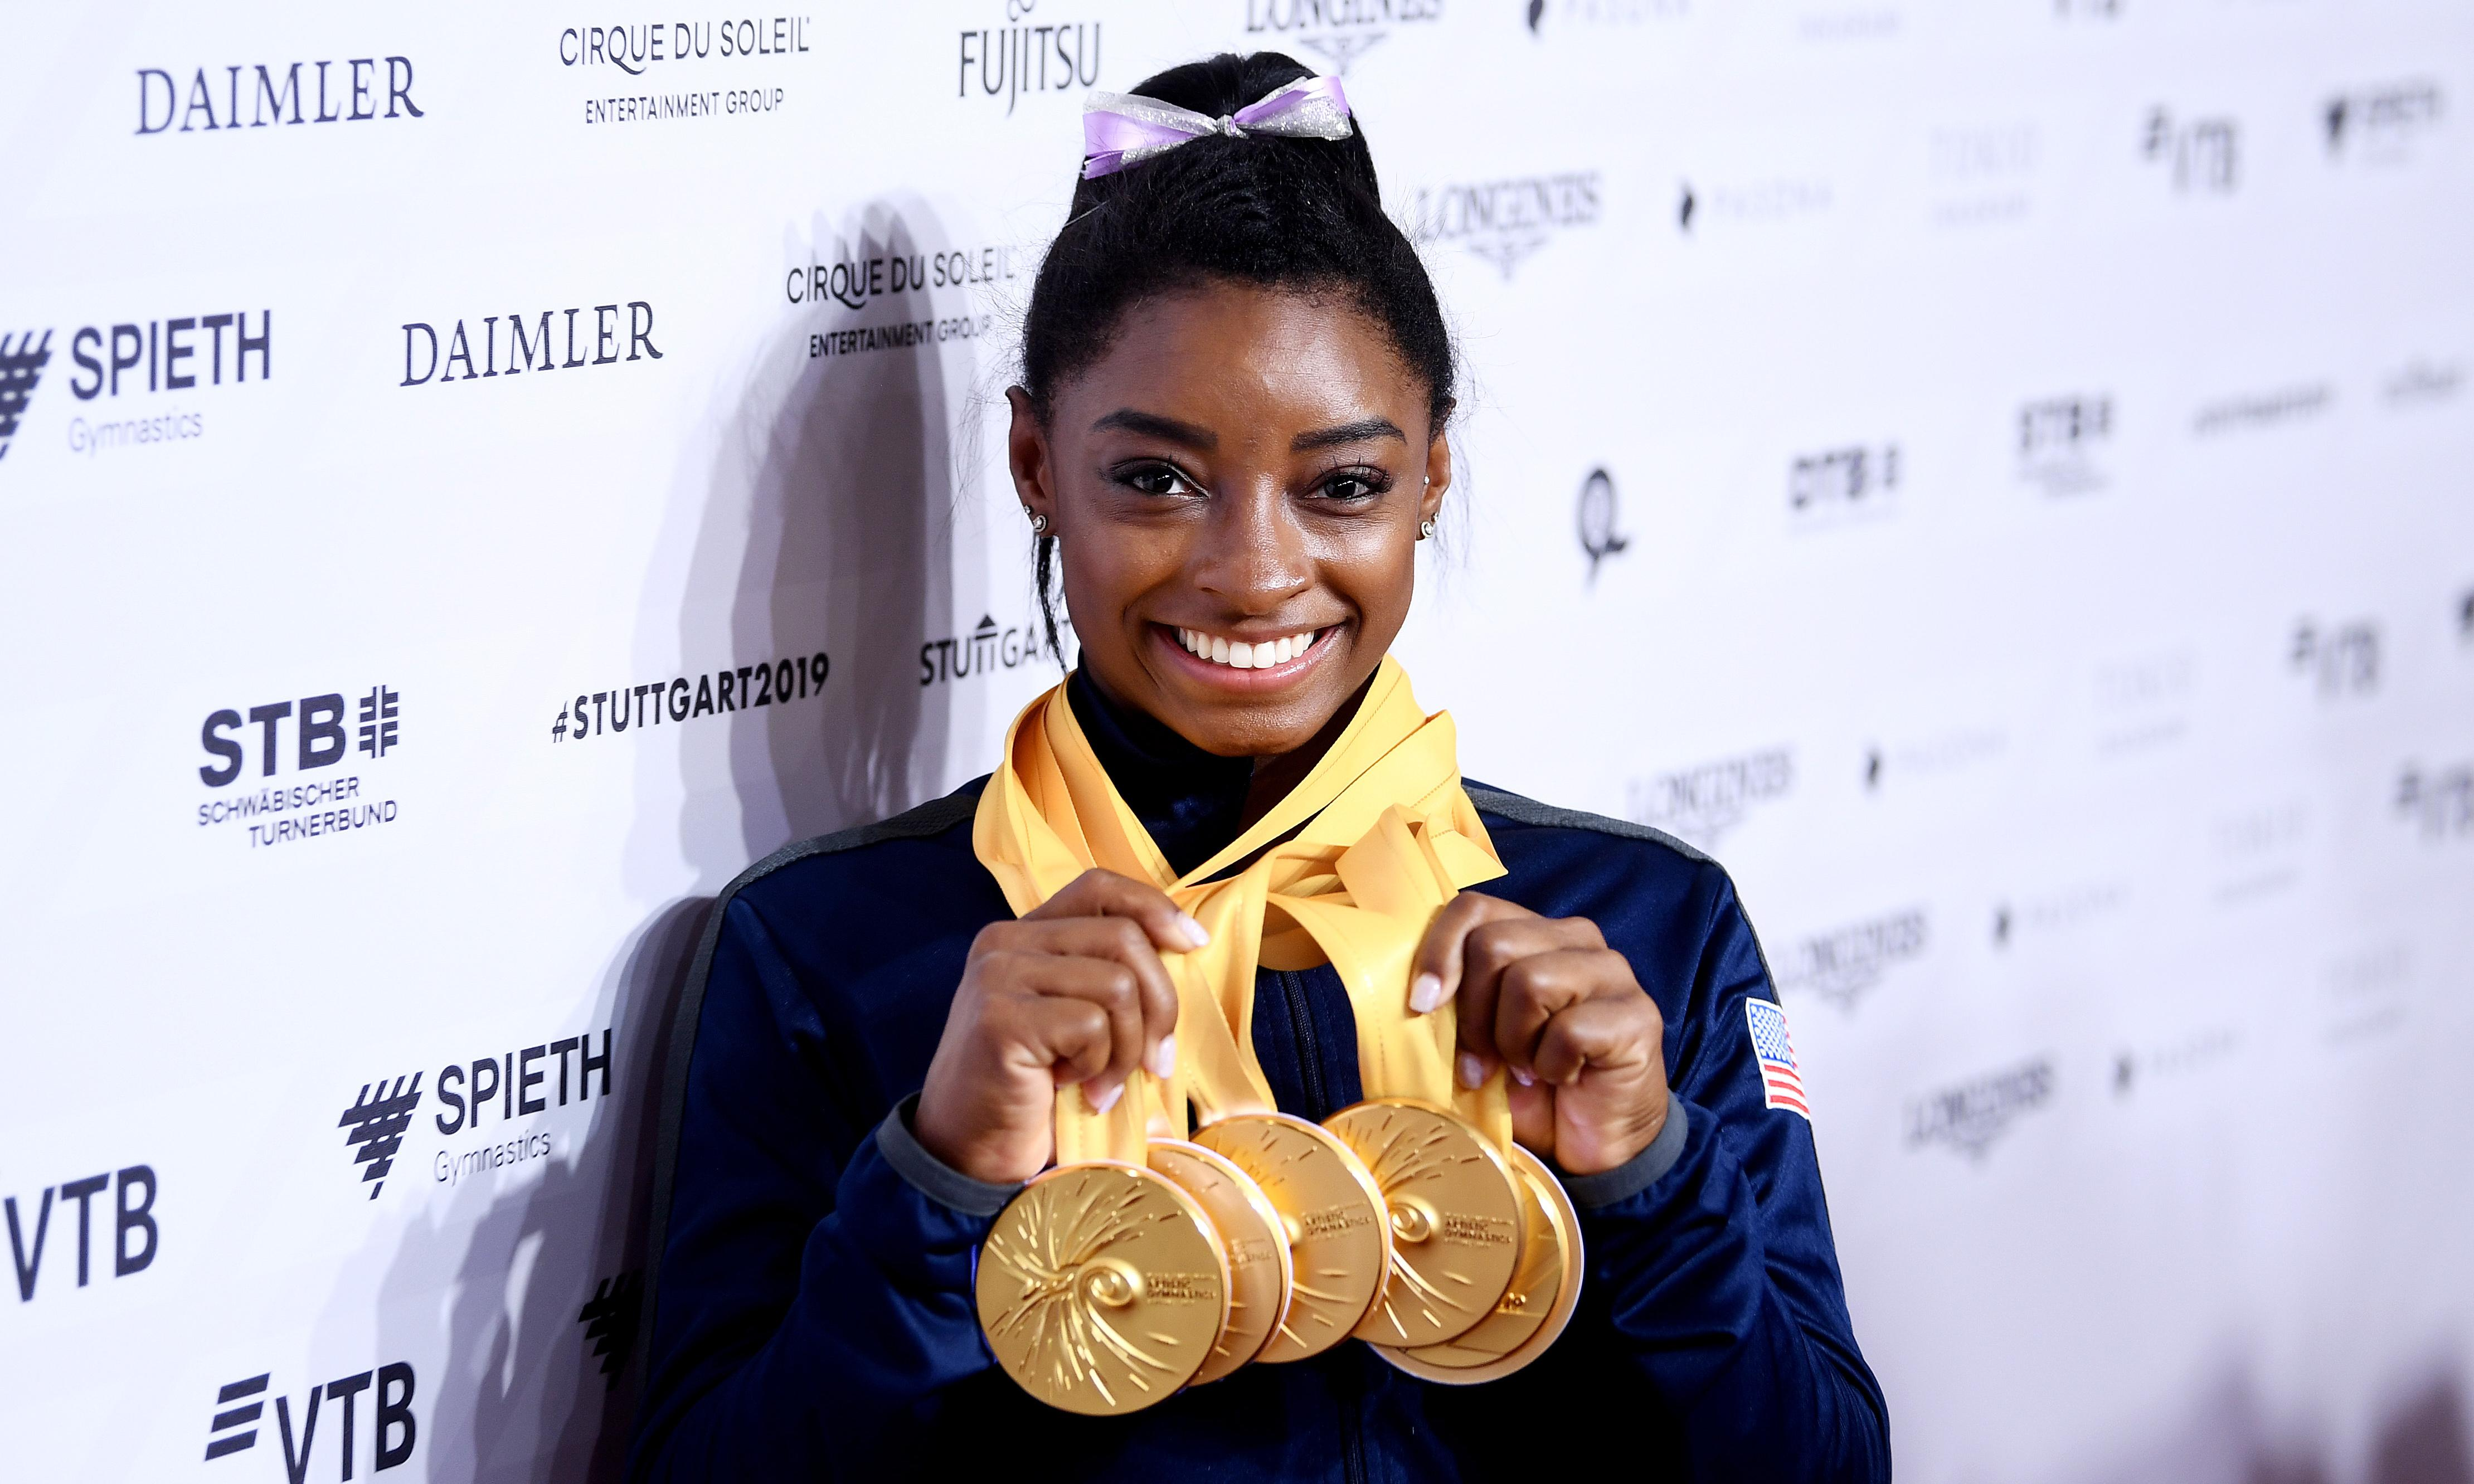 The unstoppable Simone Biles shows again her only competition is herself